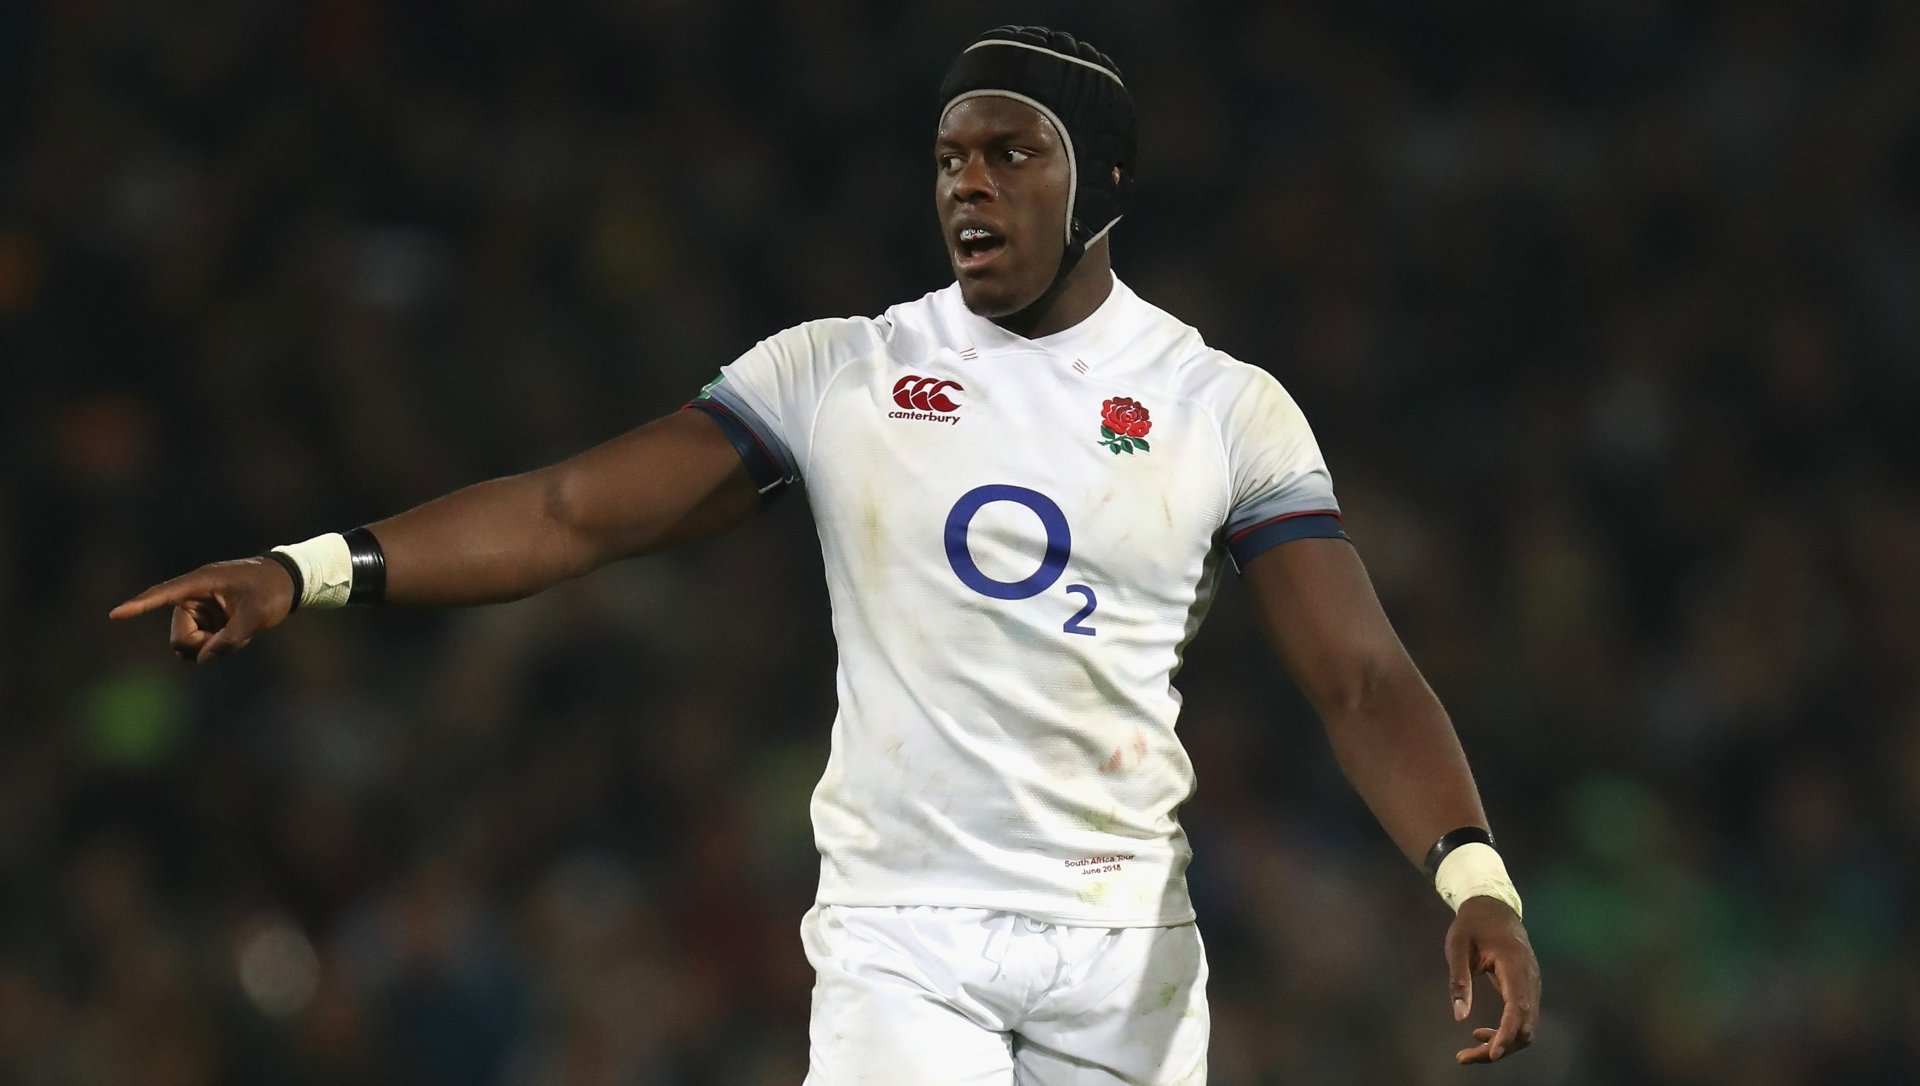 What Maro Itoje needs to do to get into elusive 'world class' category